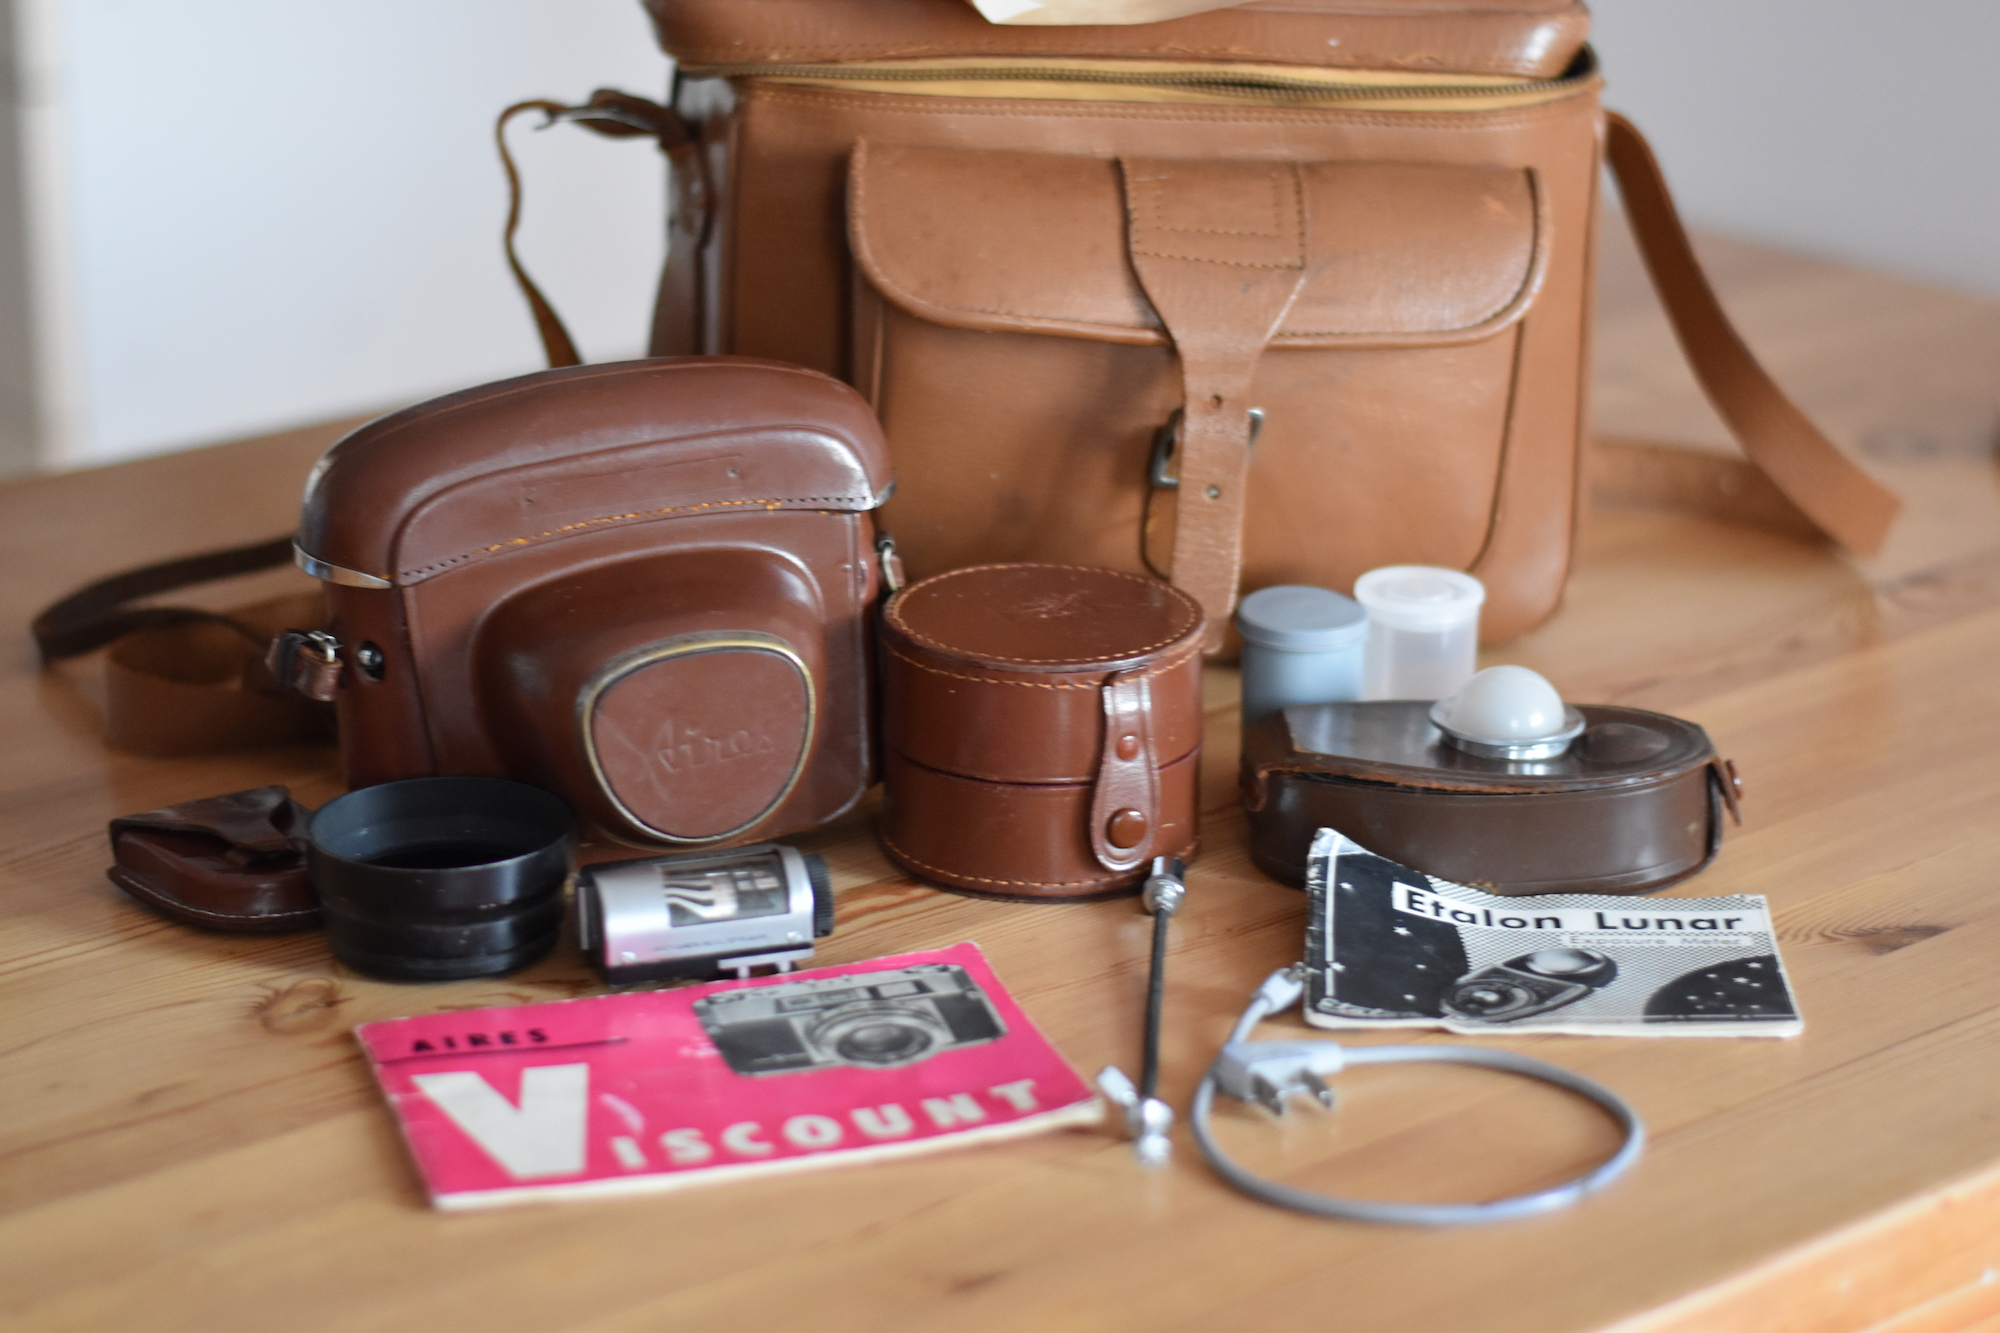 A group of camera equipment in front of a leather camera bag. Including a camera in a full leather case, a leather lens box, a light meter, some film canisters, and a manual